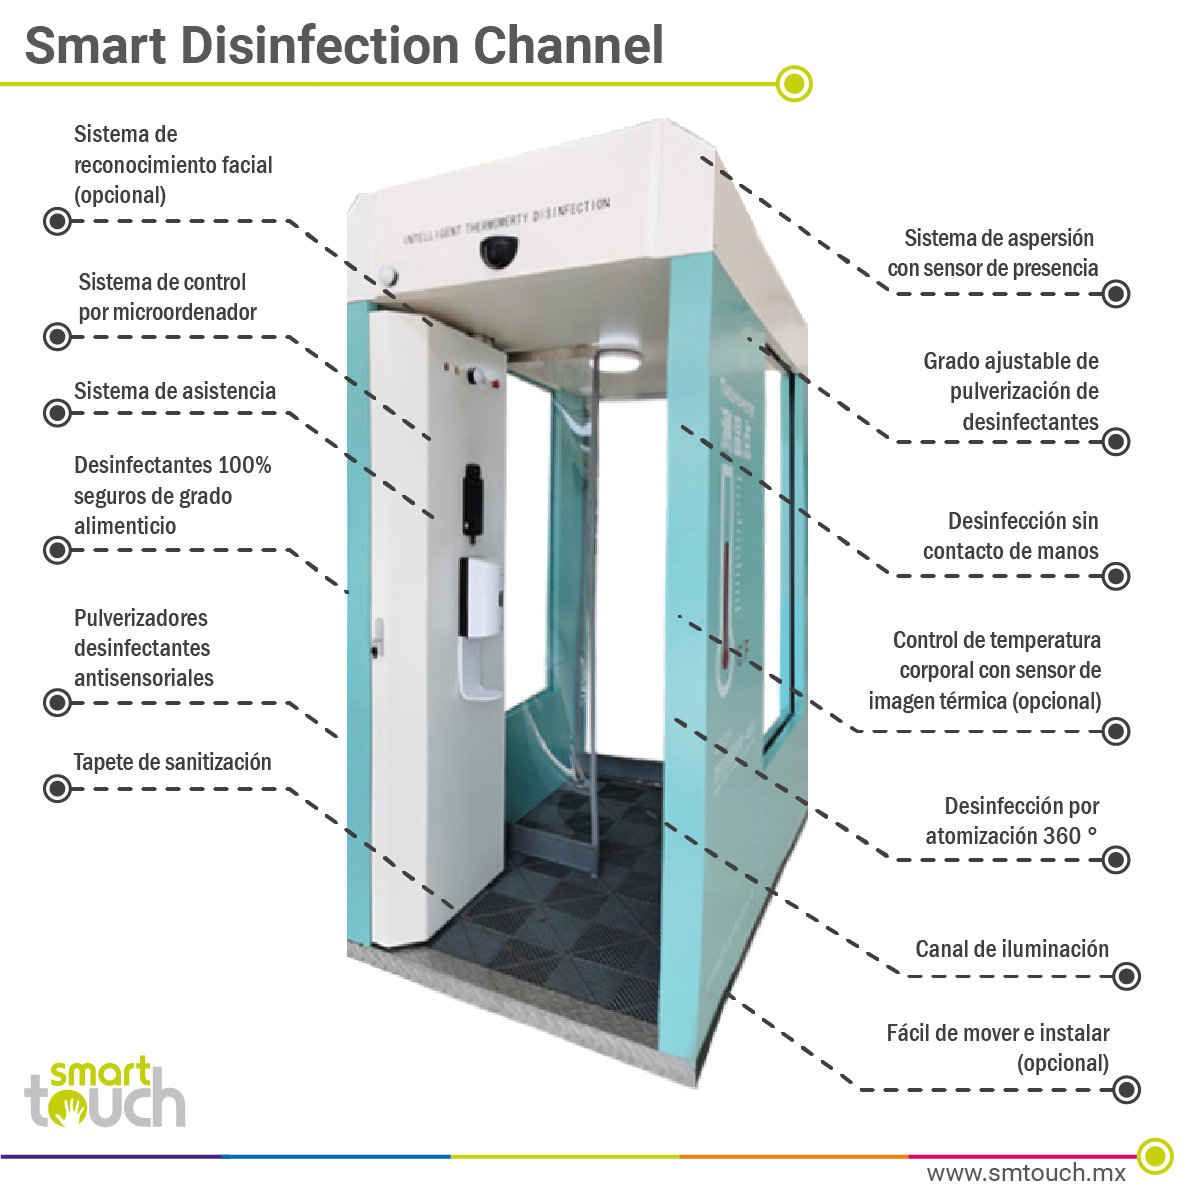 Smart Disinfection Channel